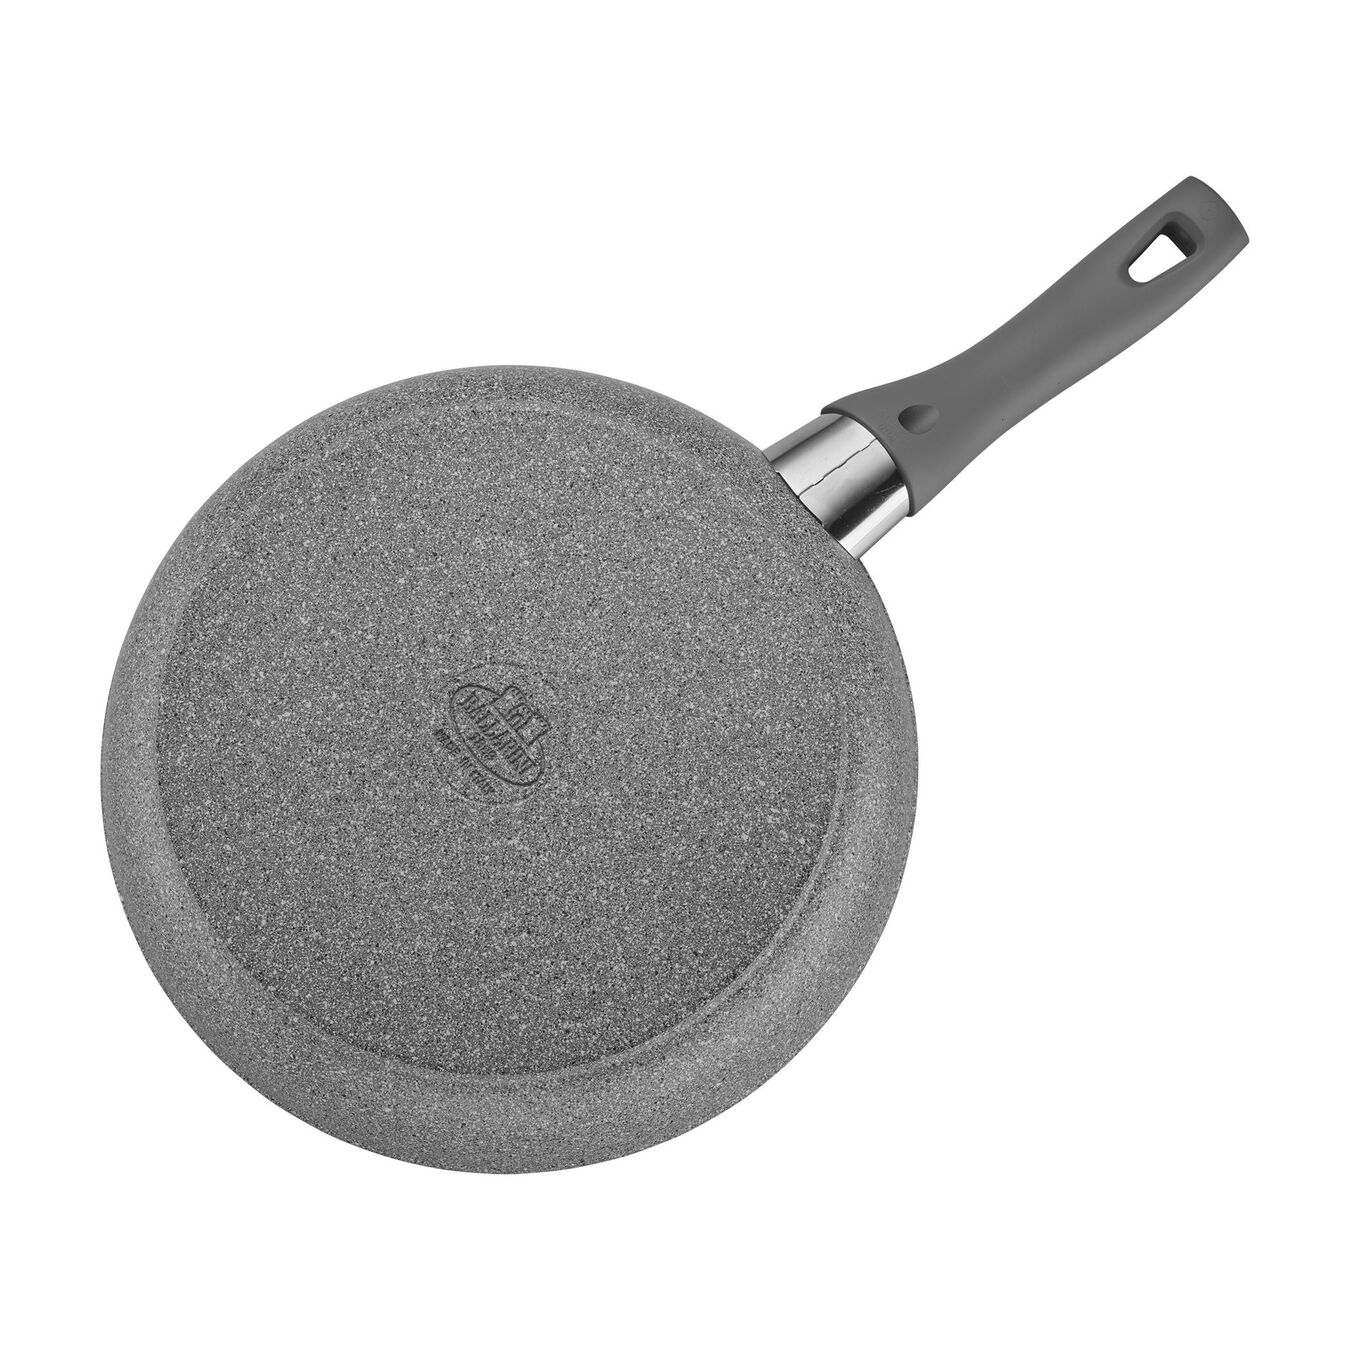 10-inch Nonstick Fry Pan,,large 4